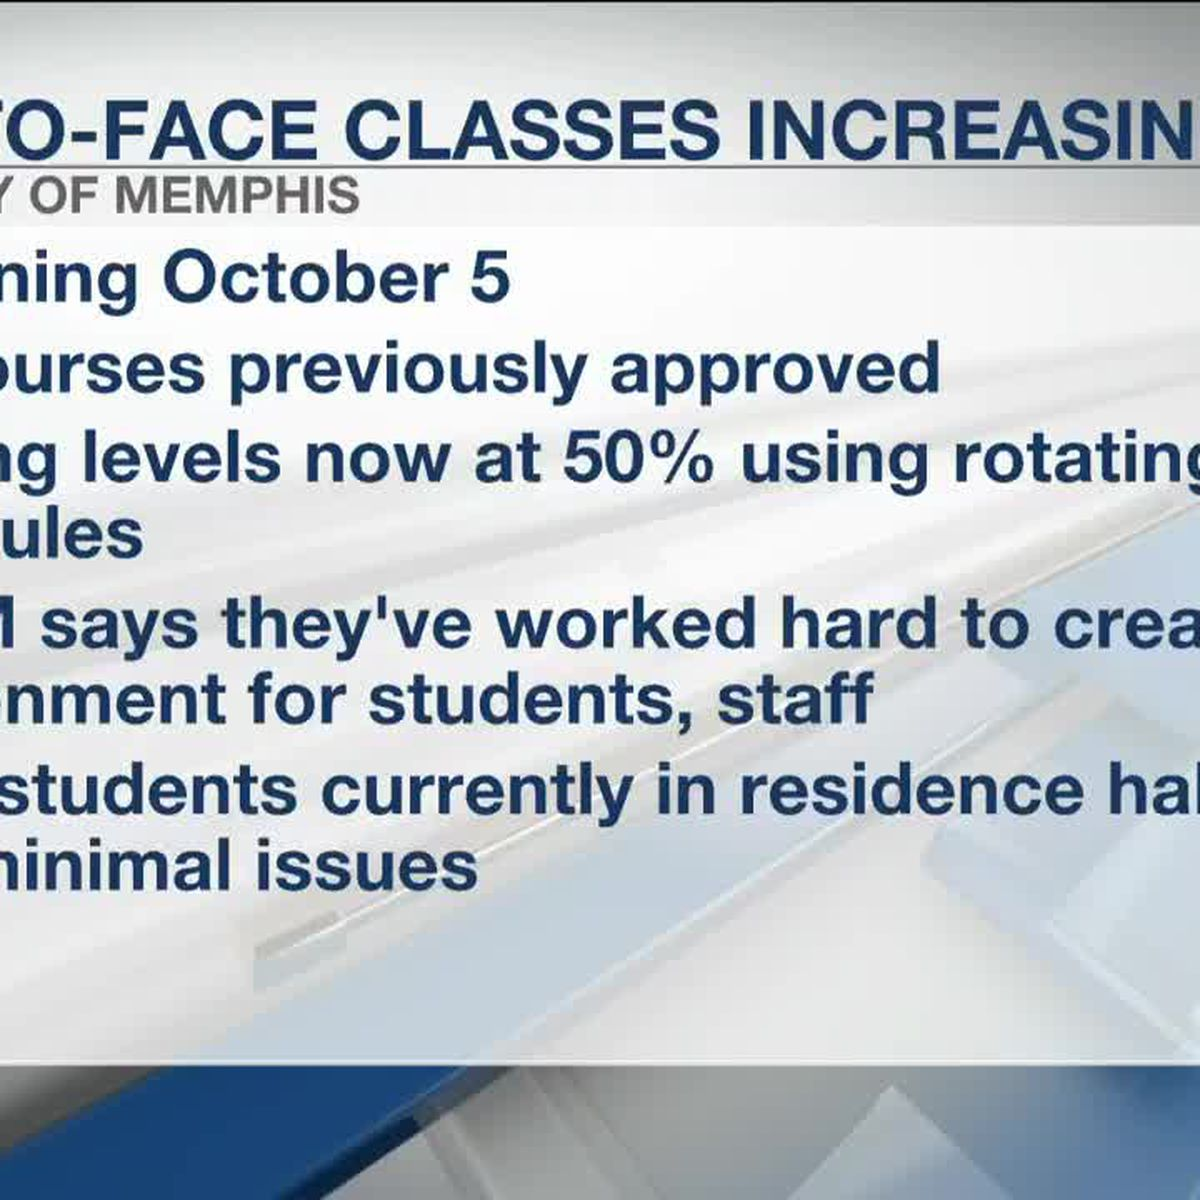 UofM increasing face-to-face classes next month